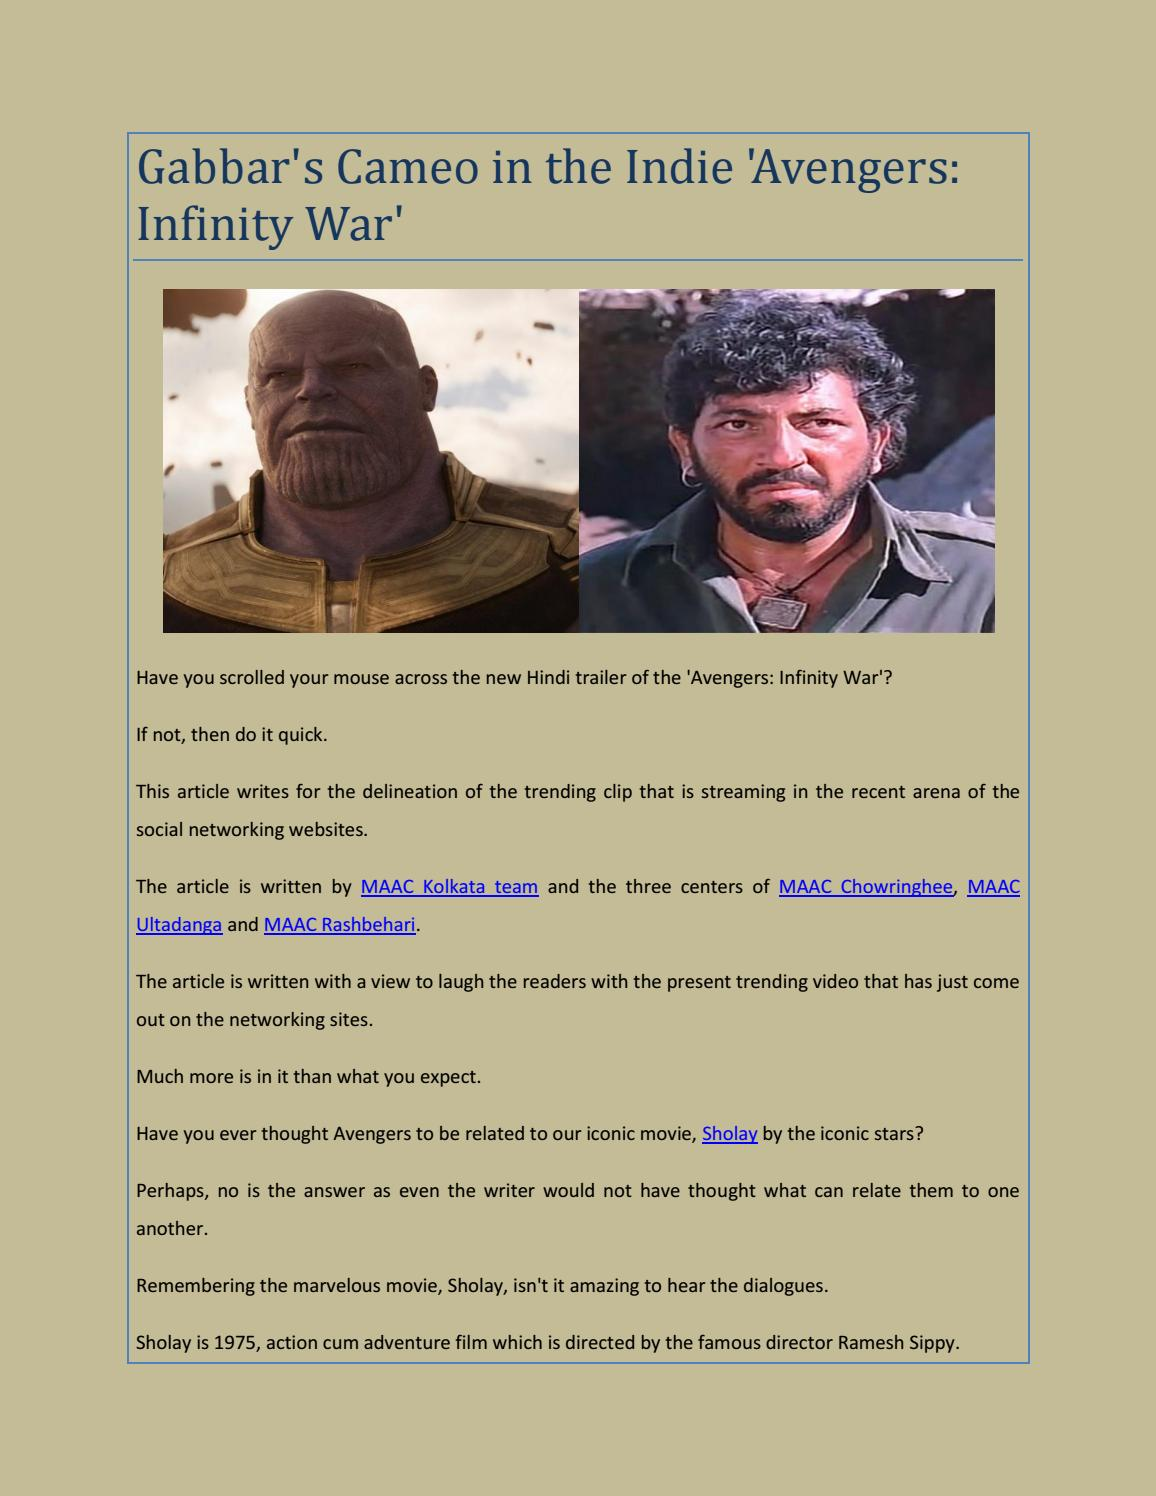 Gabbar's Cameo in the Indie Avengers Infinity War by MAAC